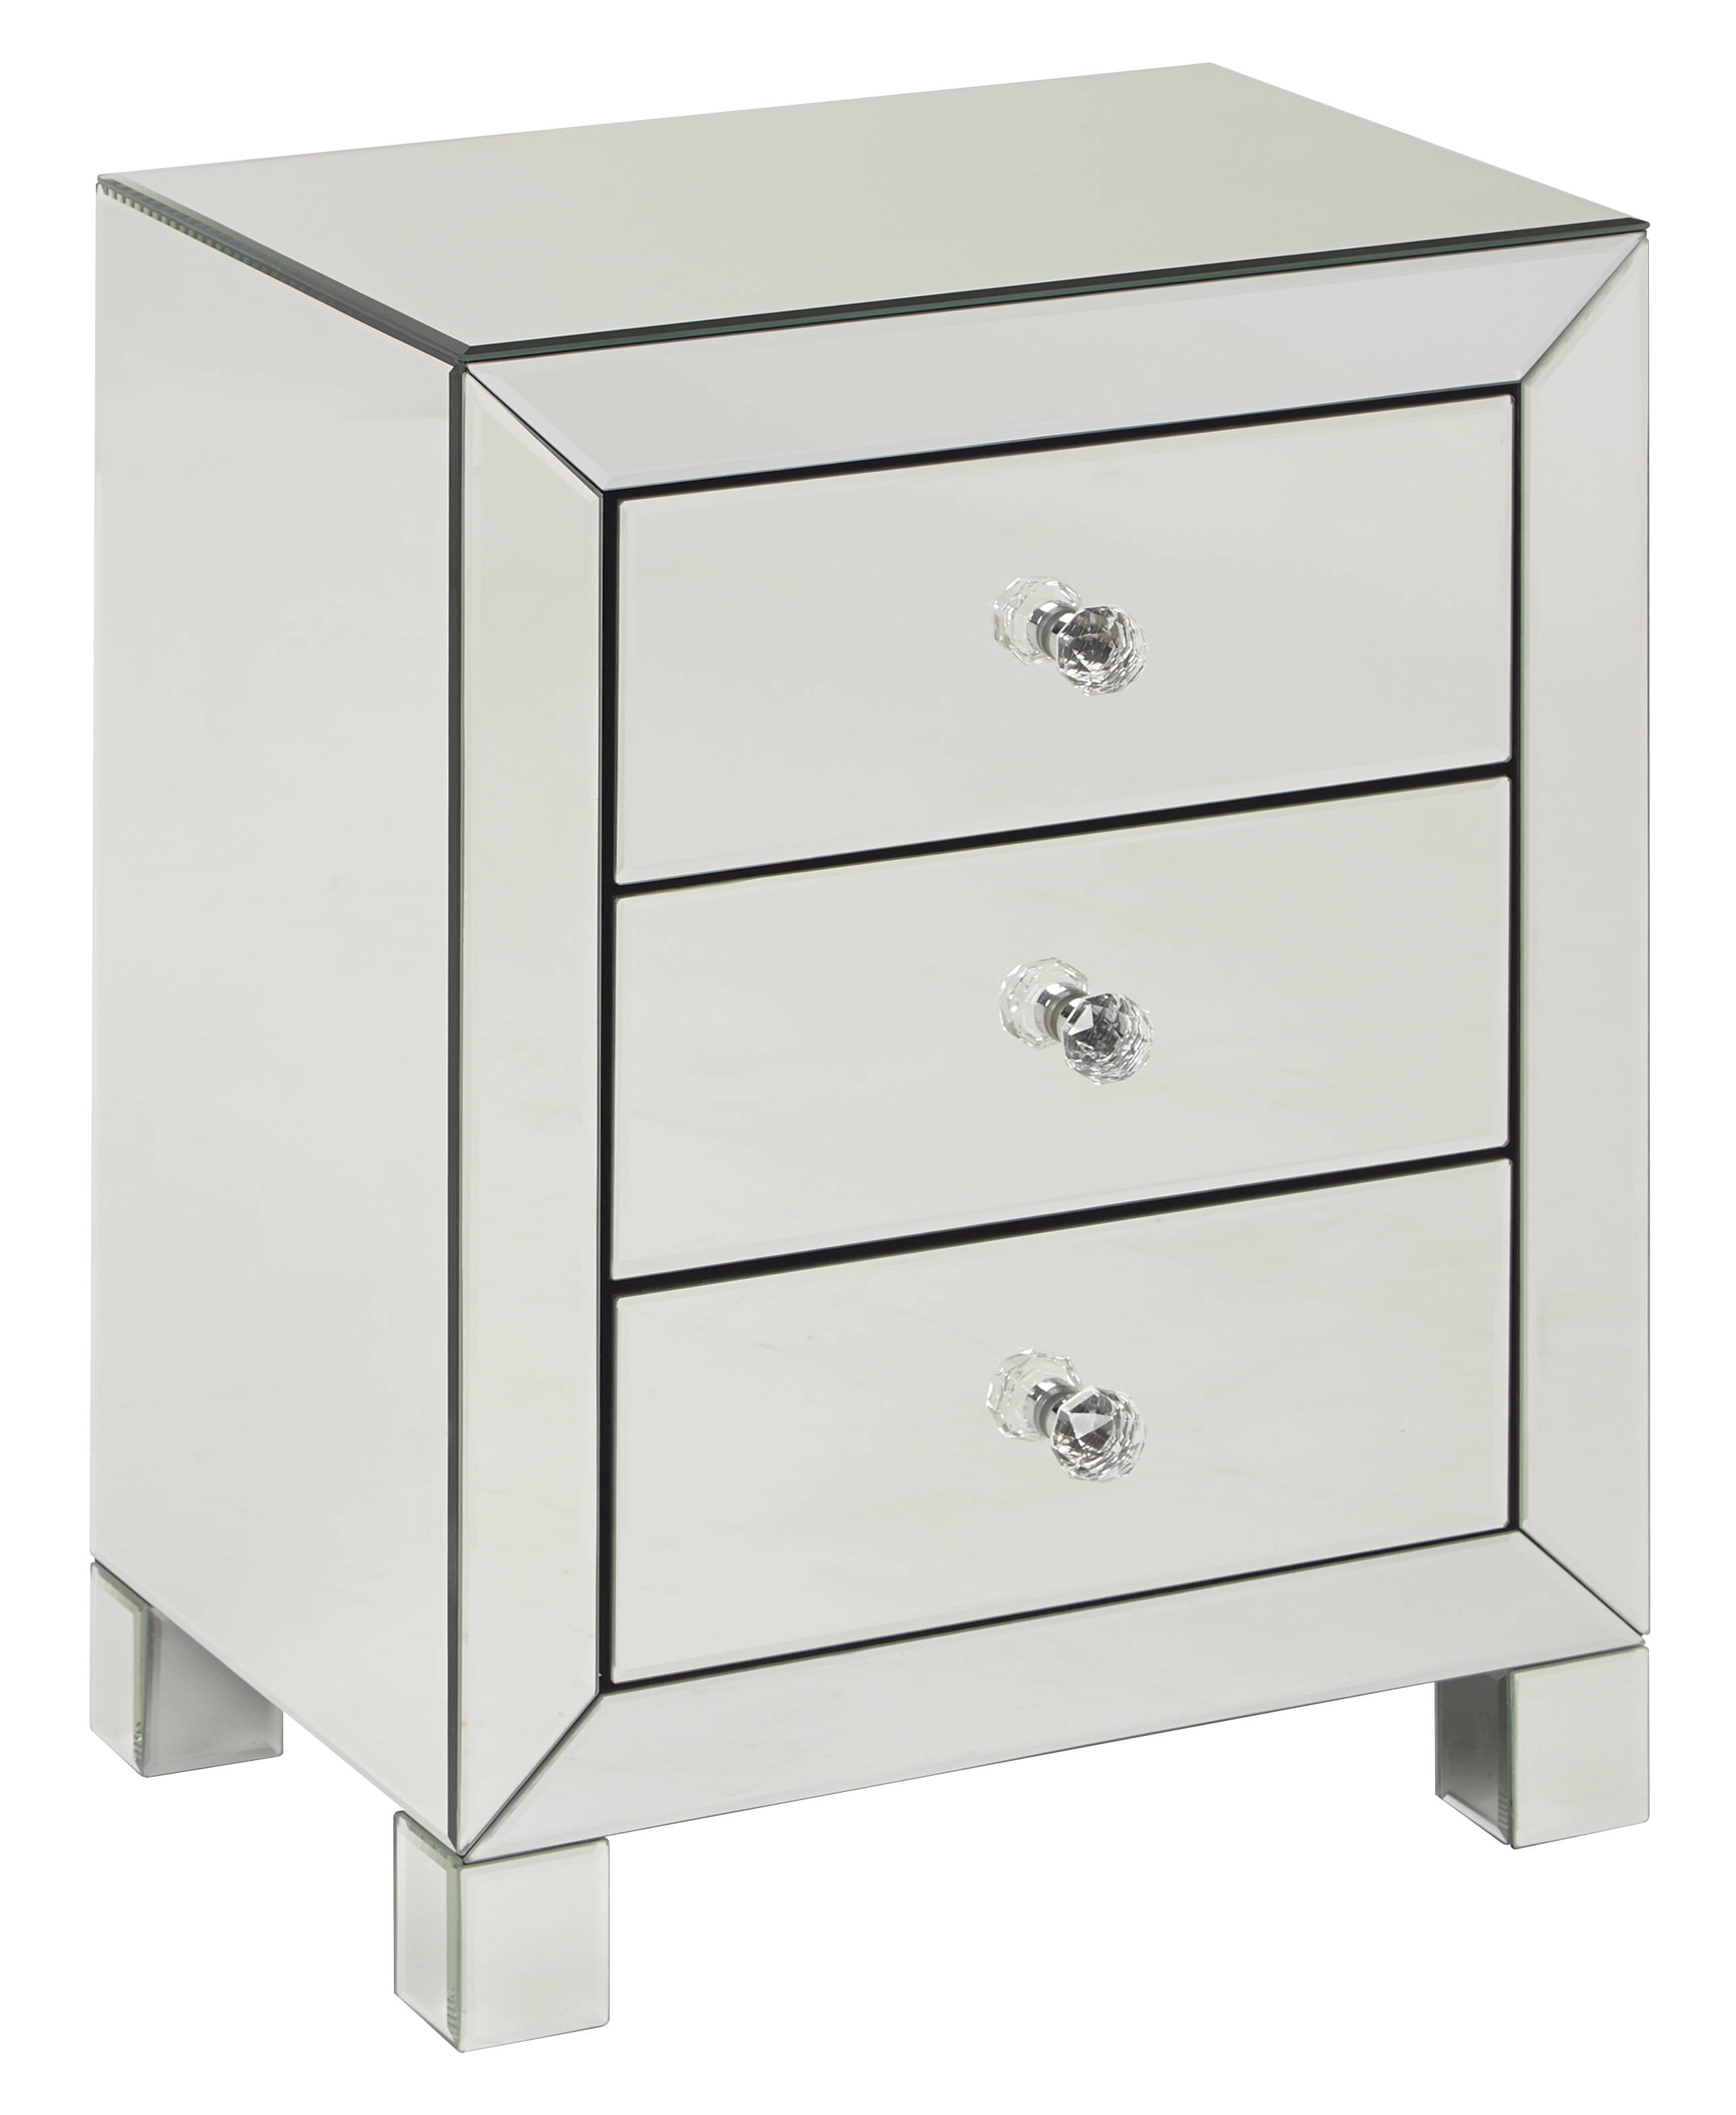 Reflections Silver Mirror 3 Drawer Accent Table The